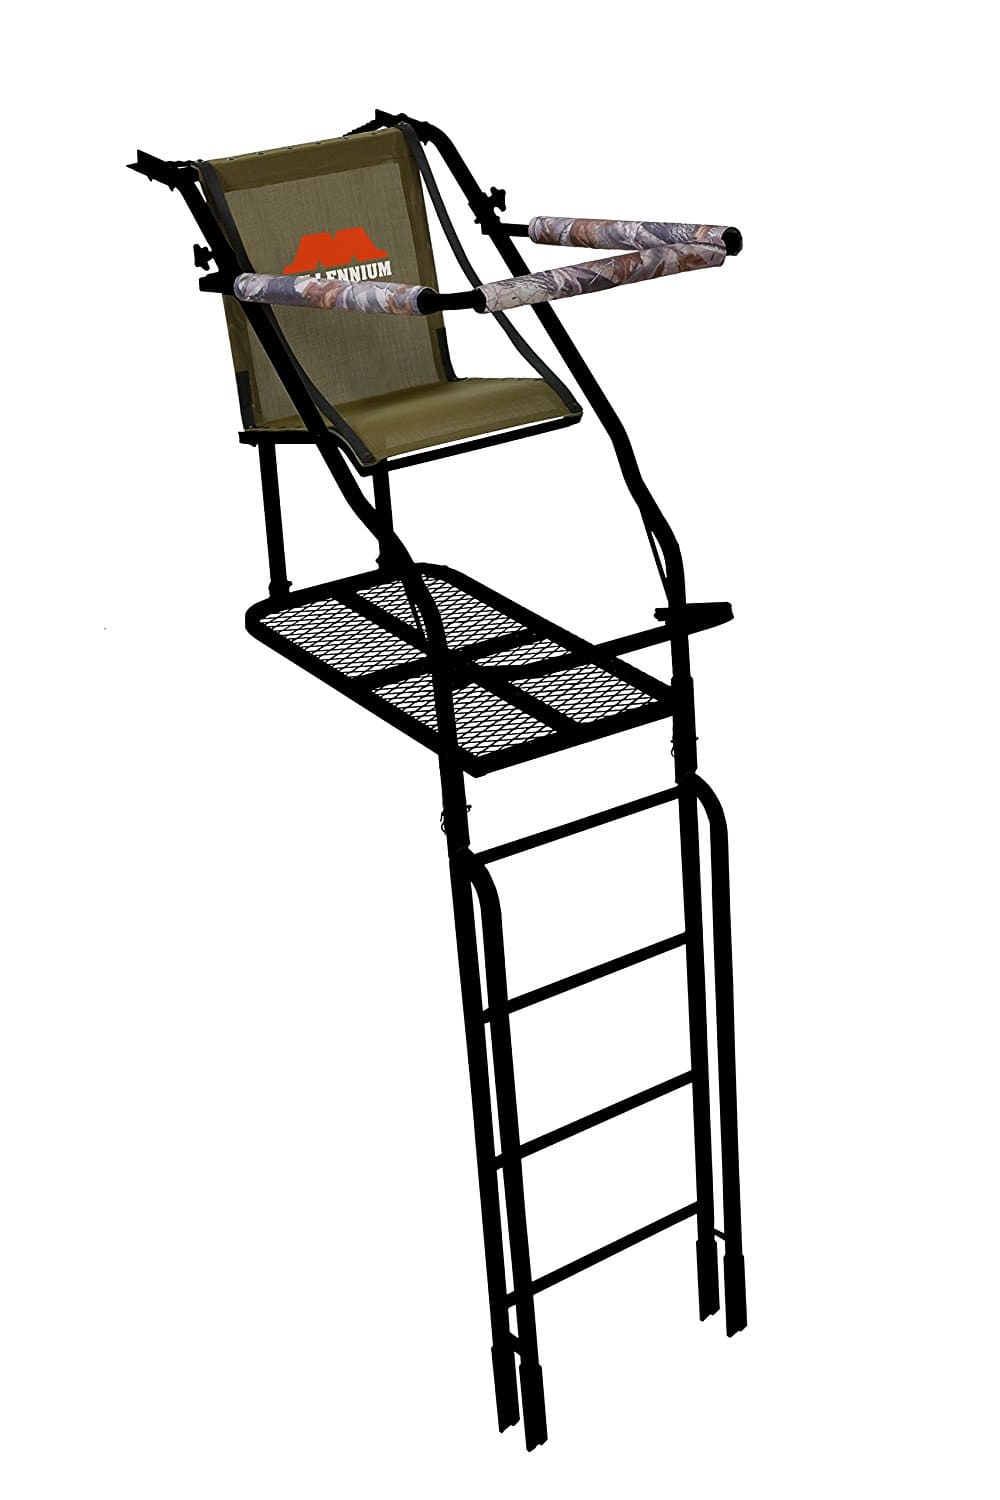 Best Ladder Stand For The Money